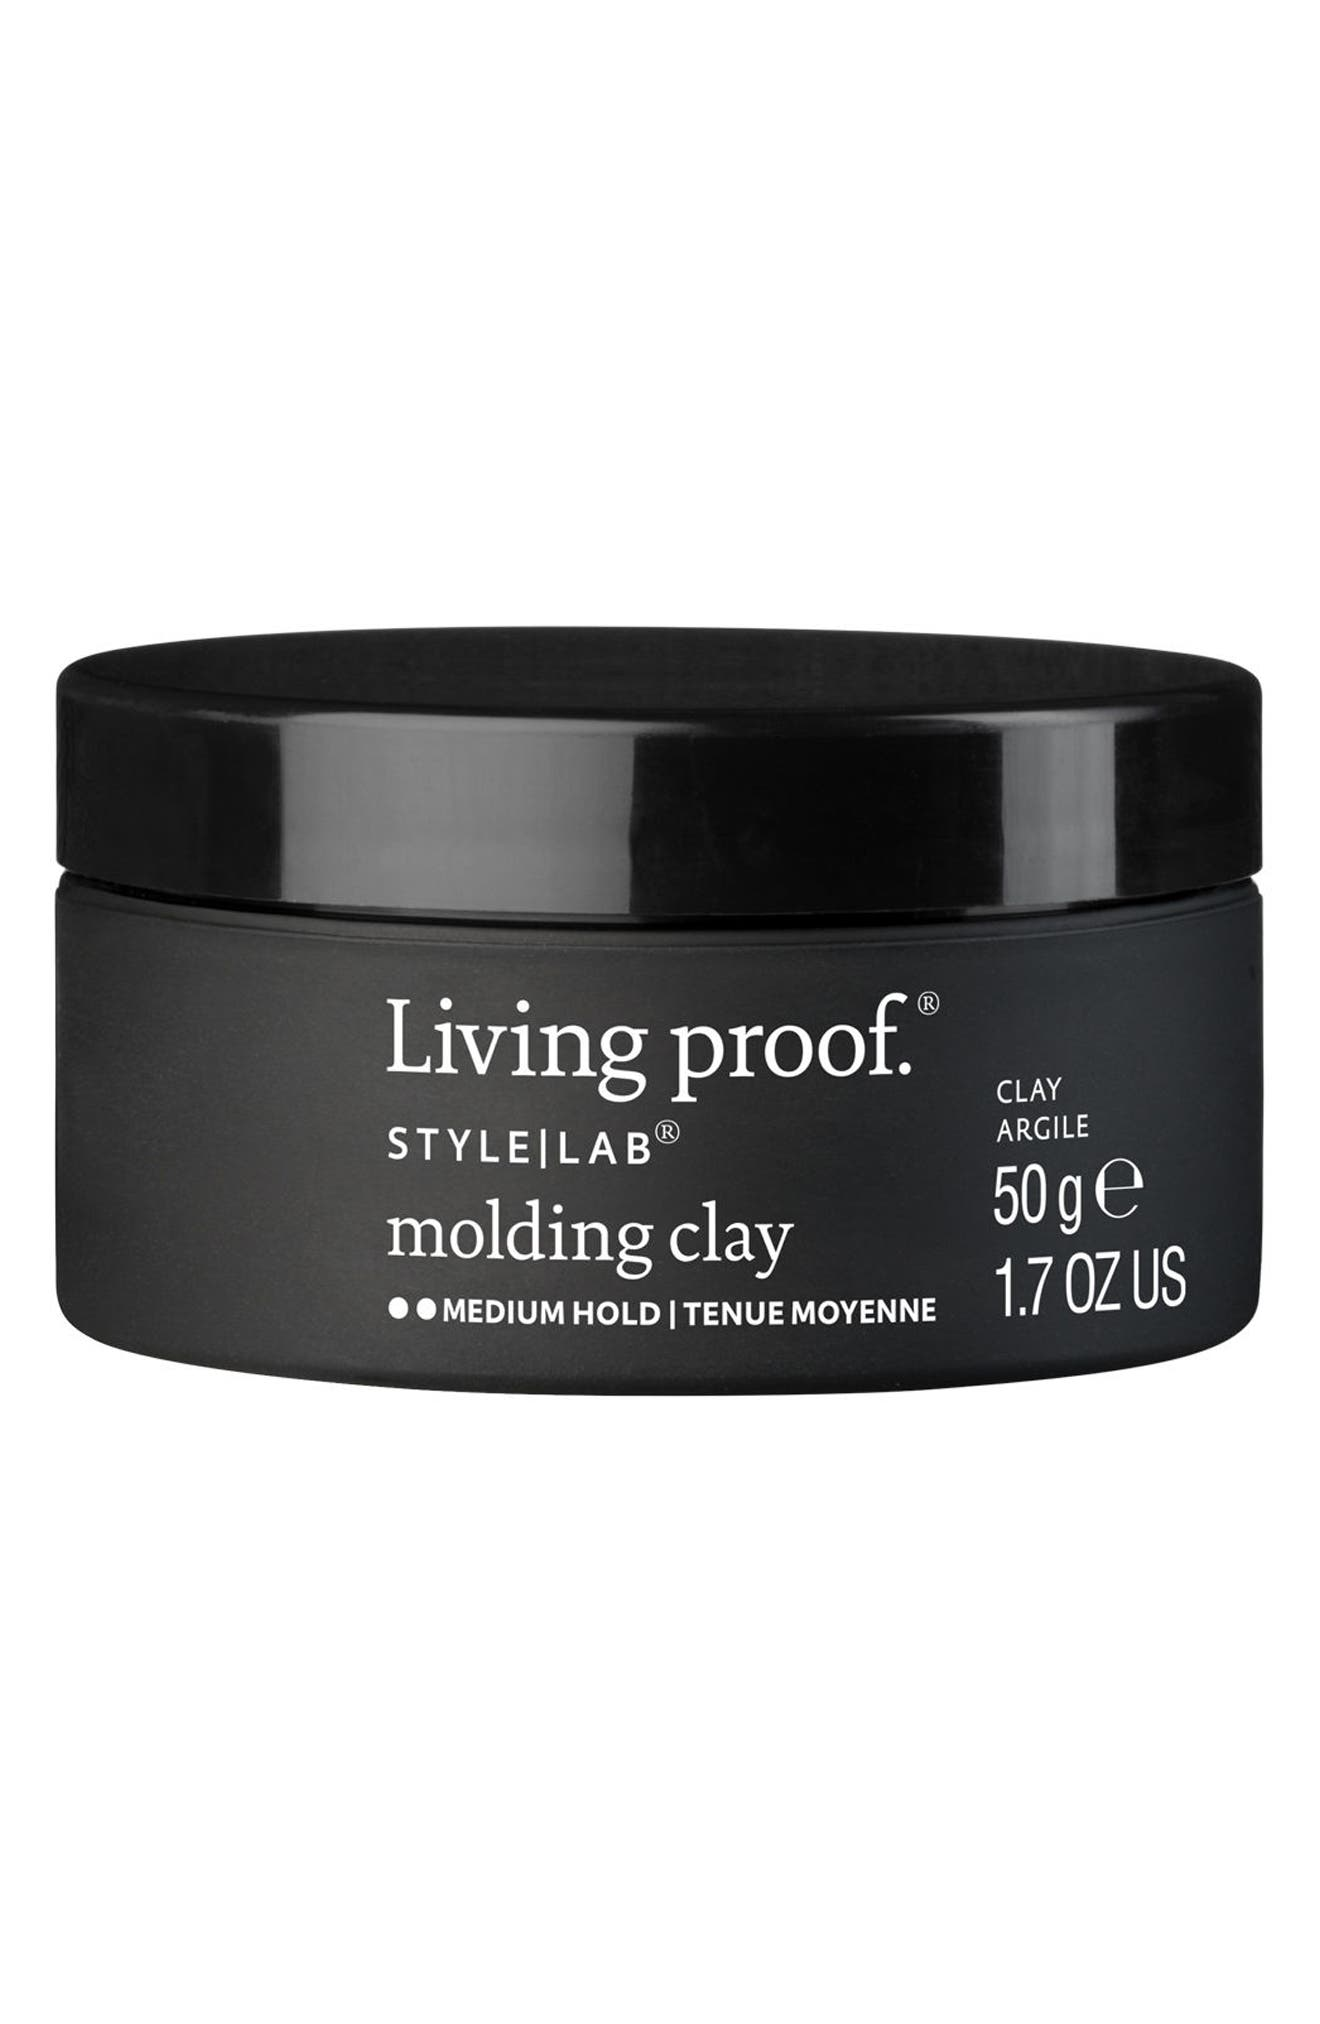 Living proof® Molding Clay